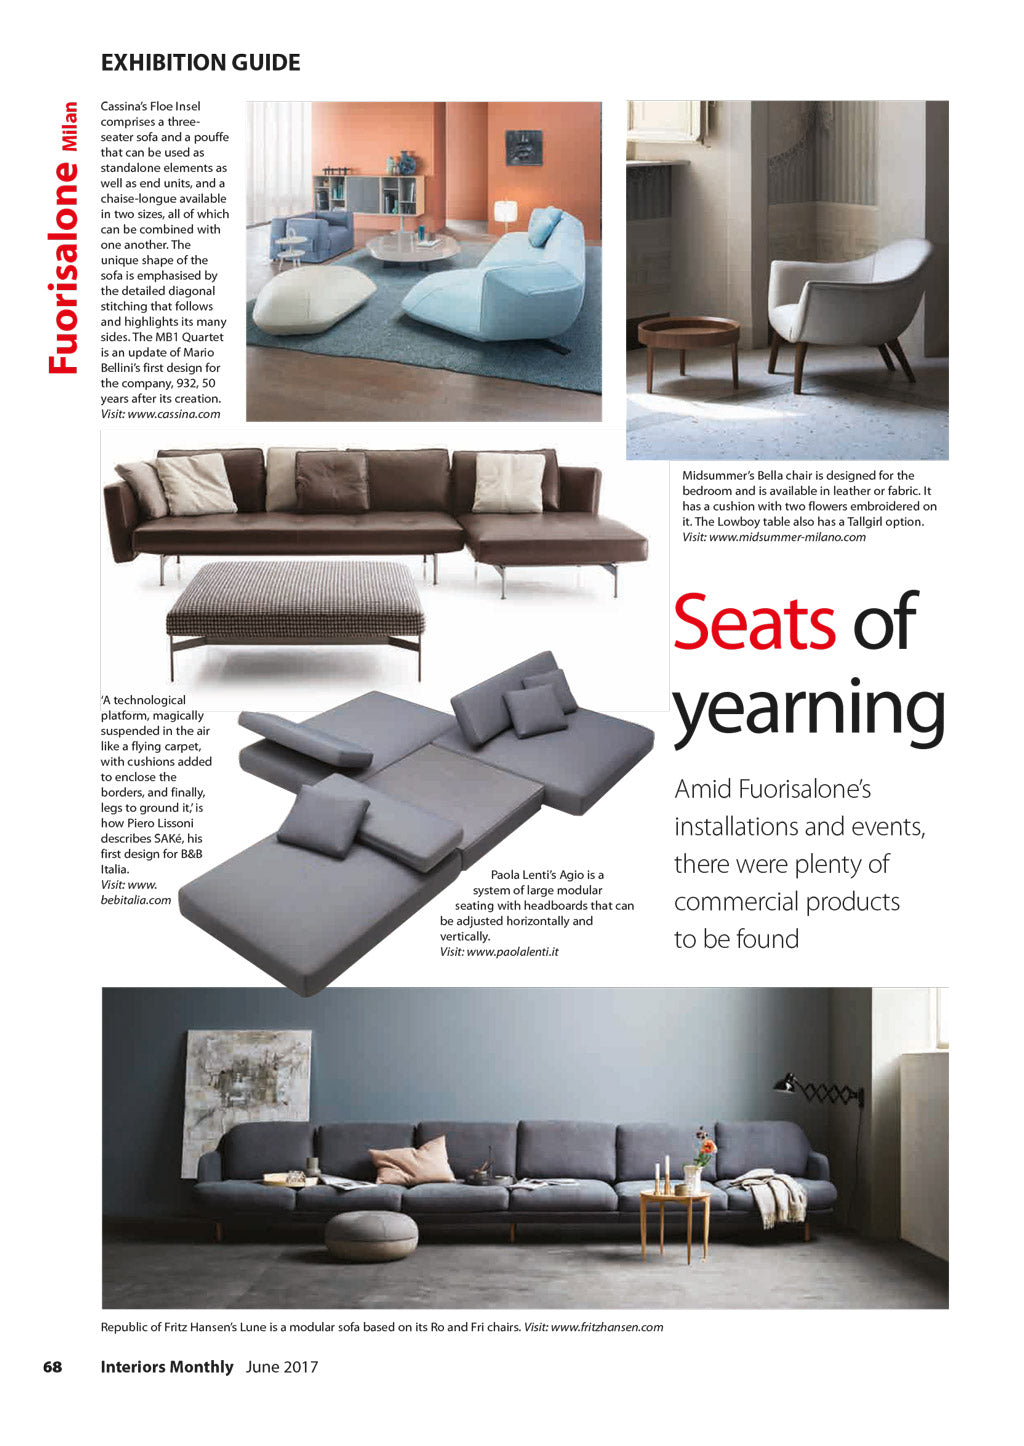 Interiors Monthly, midsummer-milano